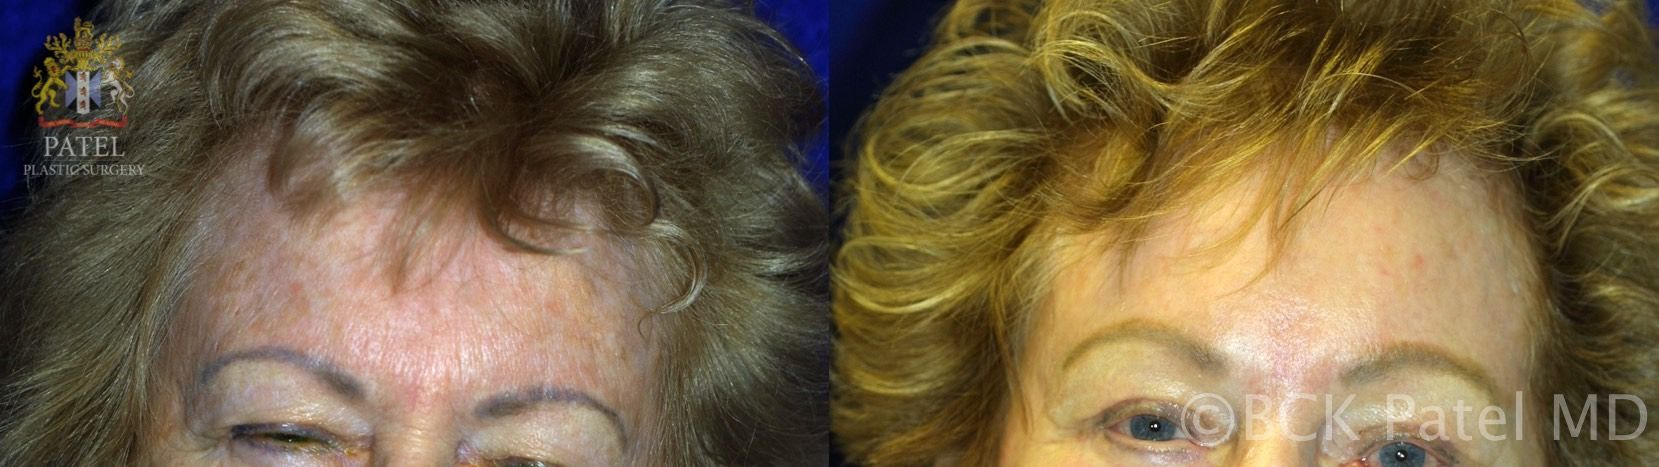 englishsurgeon.com. Photos show results of fractionated CO2 laser on the face. BCK Patel MD; Salt Lake City